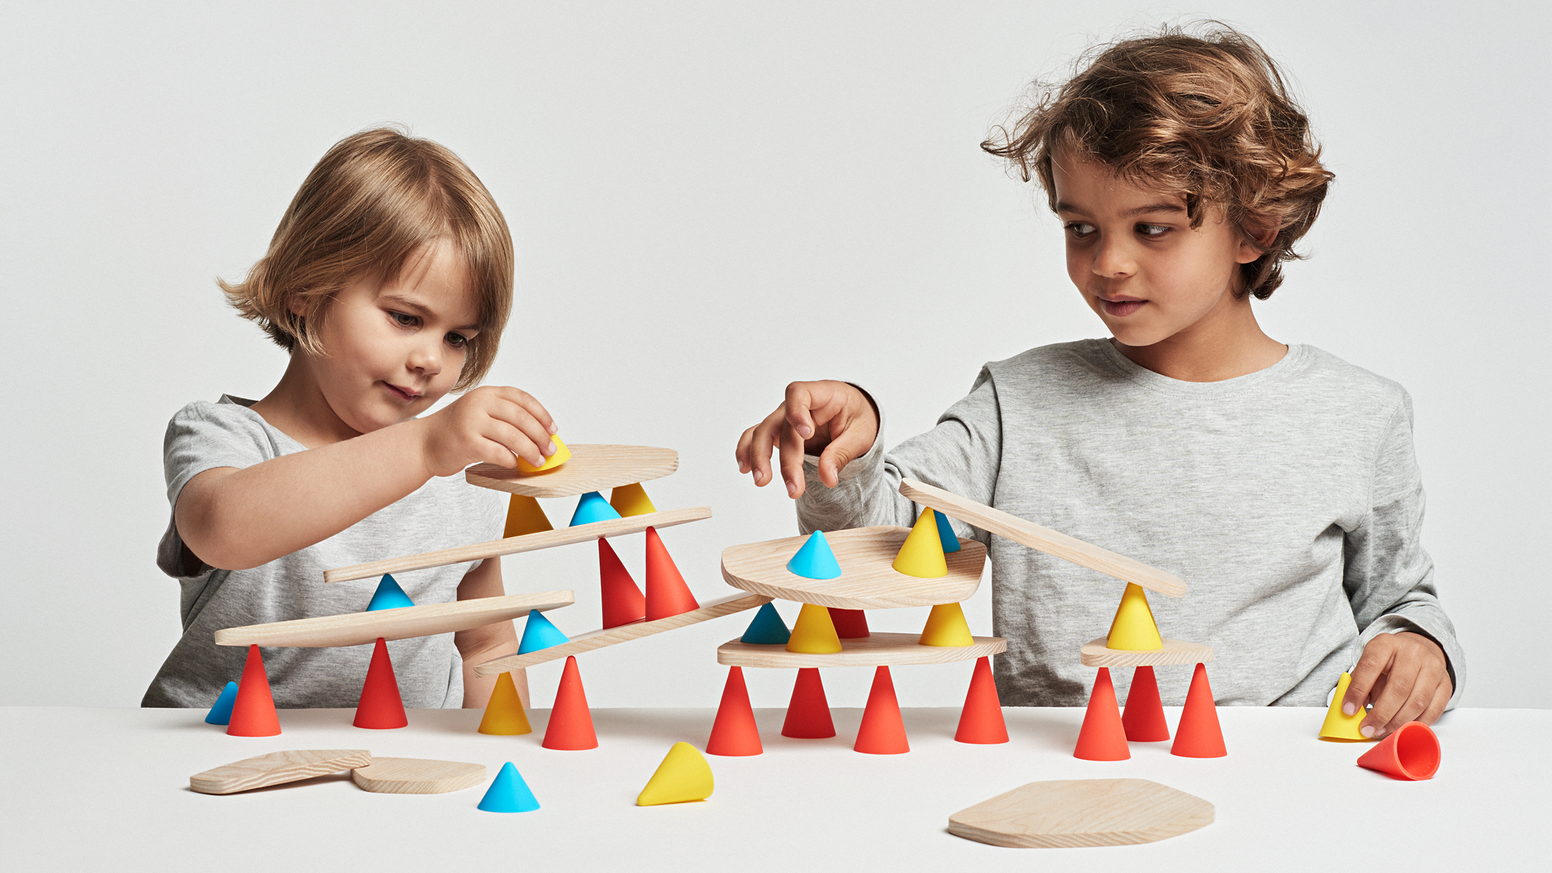 A creative & fun toy to develop child's concentration & imagination.